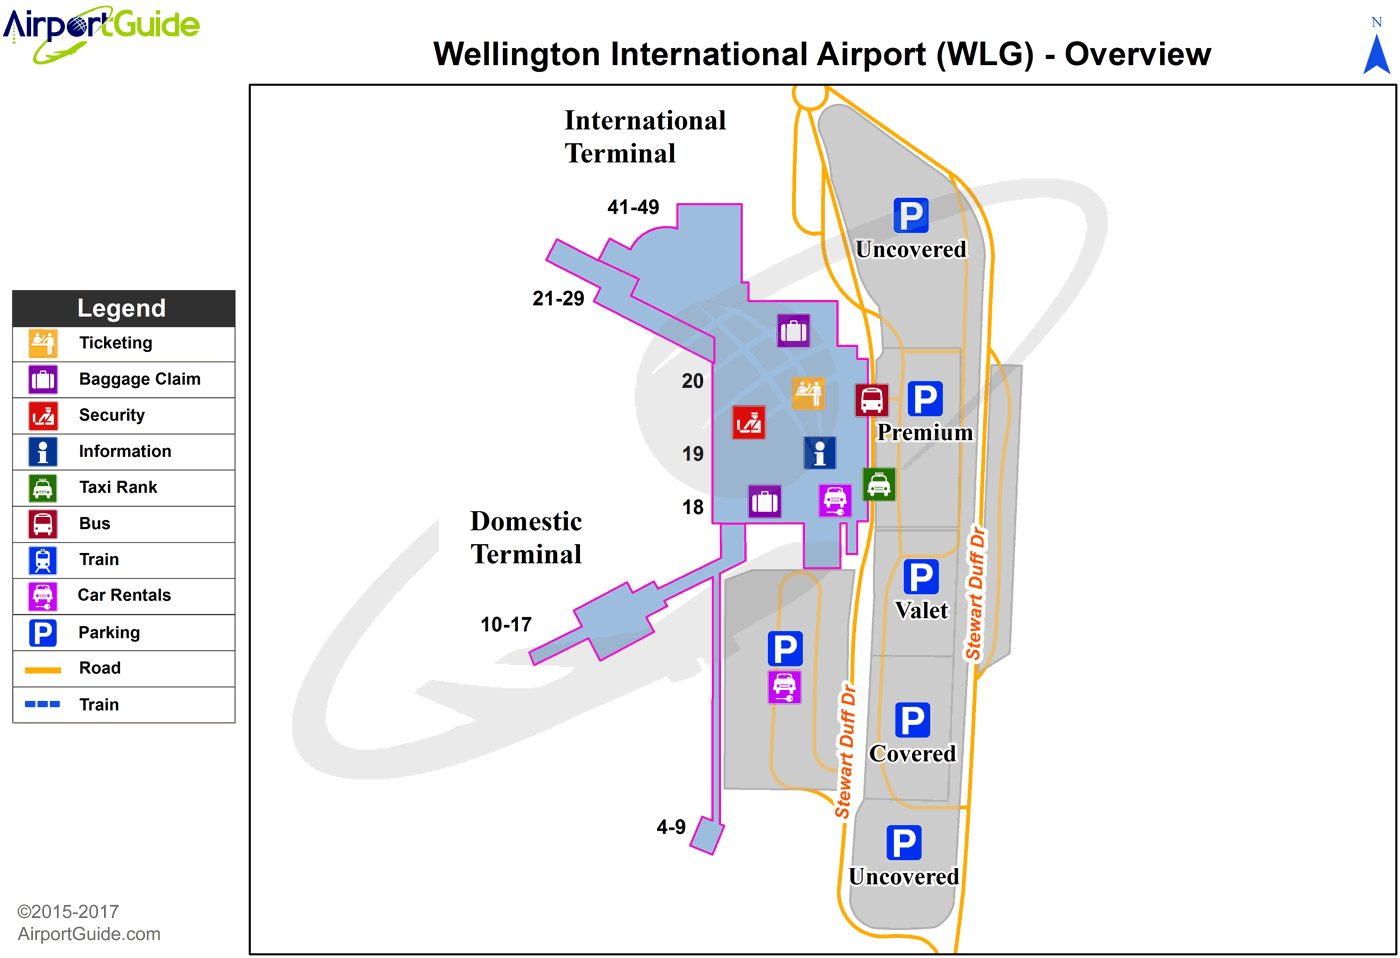 Wellington - Wellington International (WLG) Airport Terminal Map - Overview